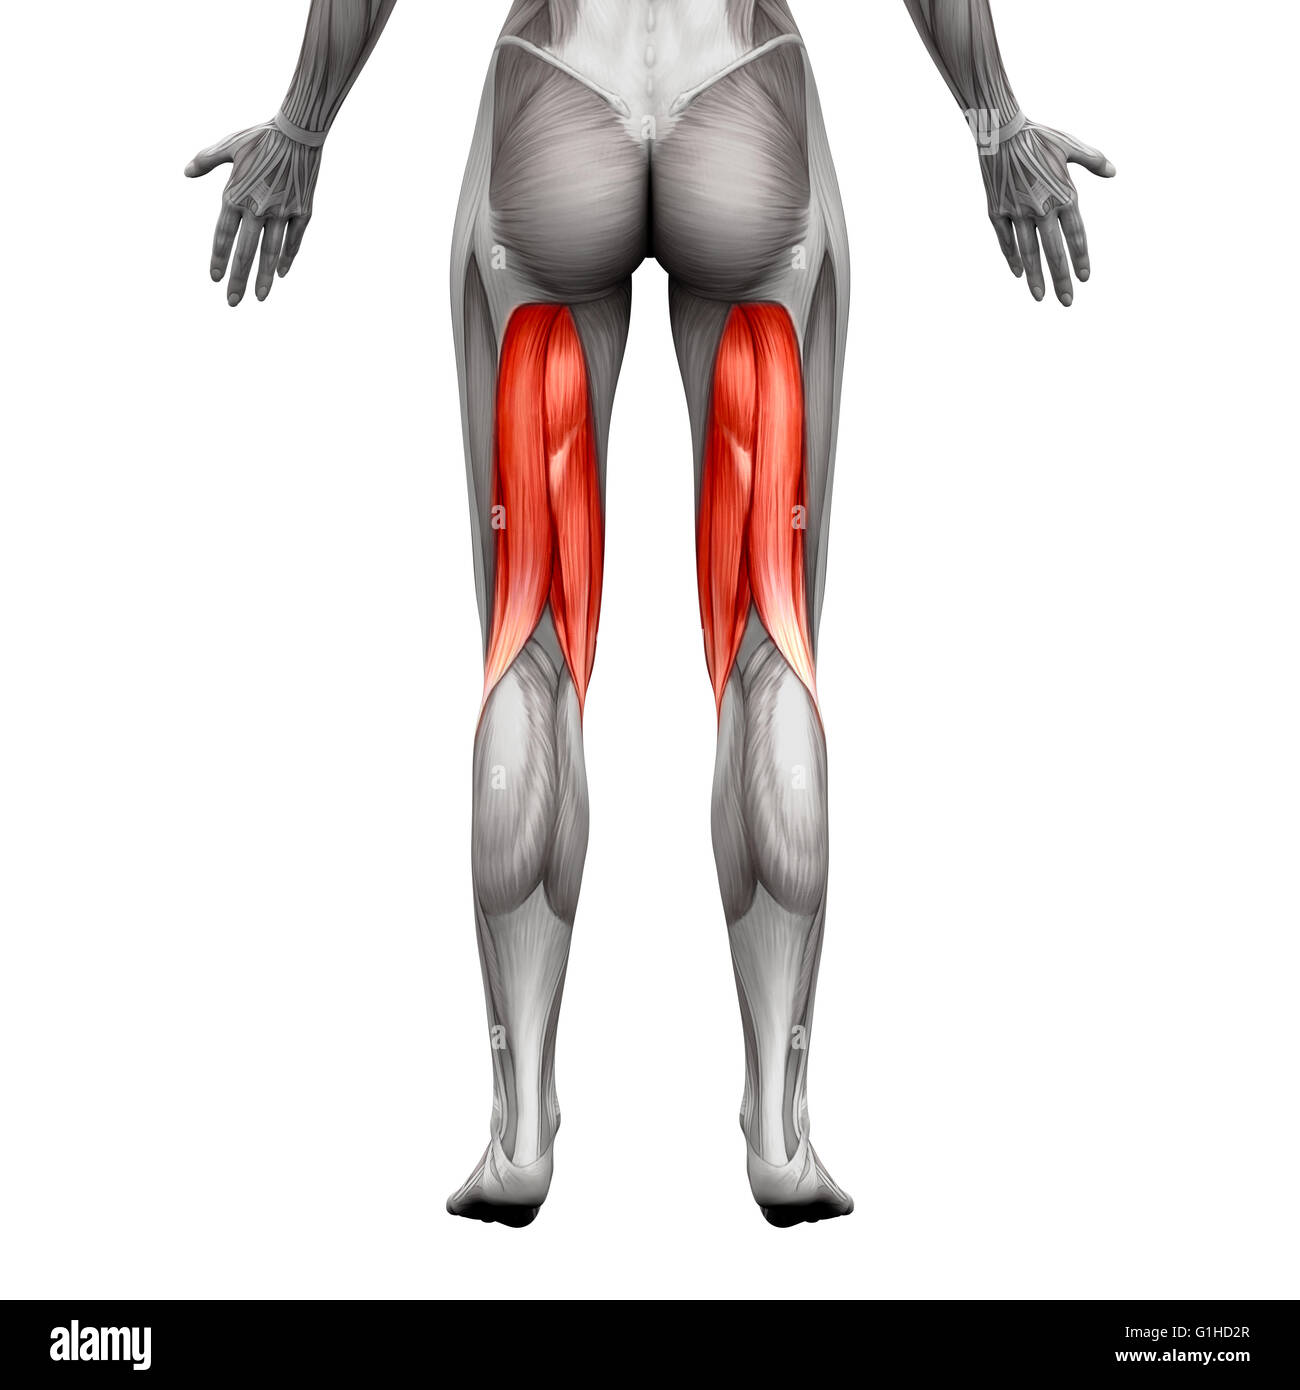 Hamstring Muscle Stock Photos & Hamstring Muscle Stock Images - Alamy